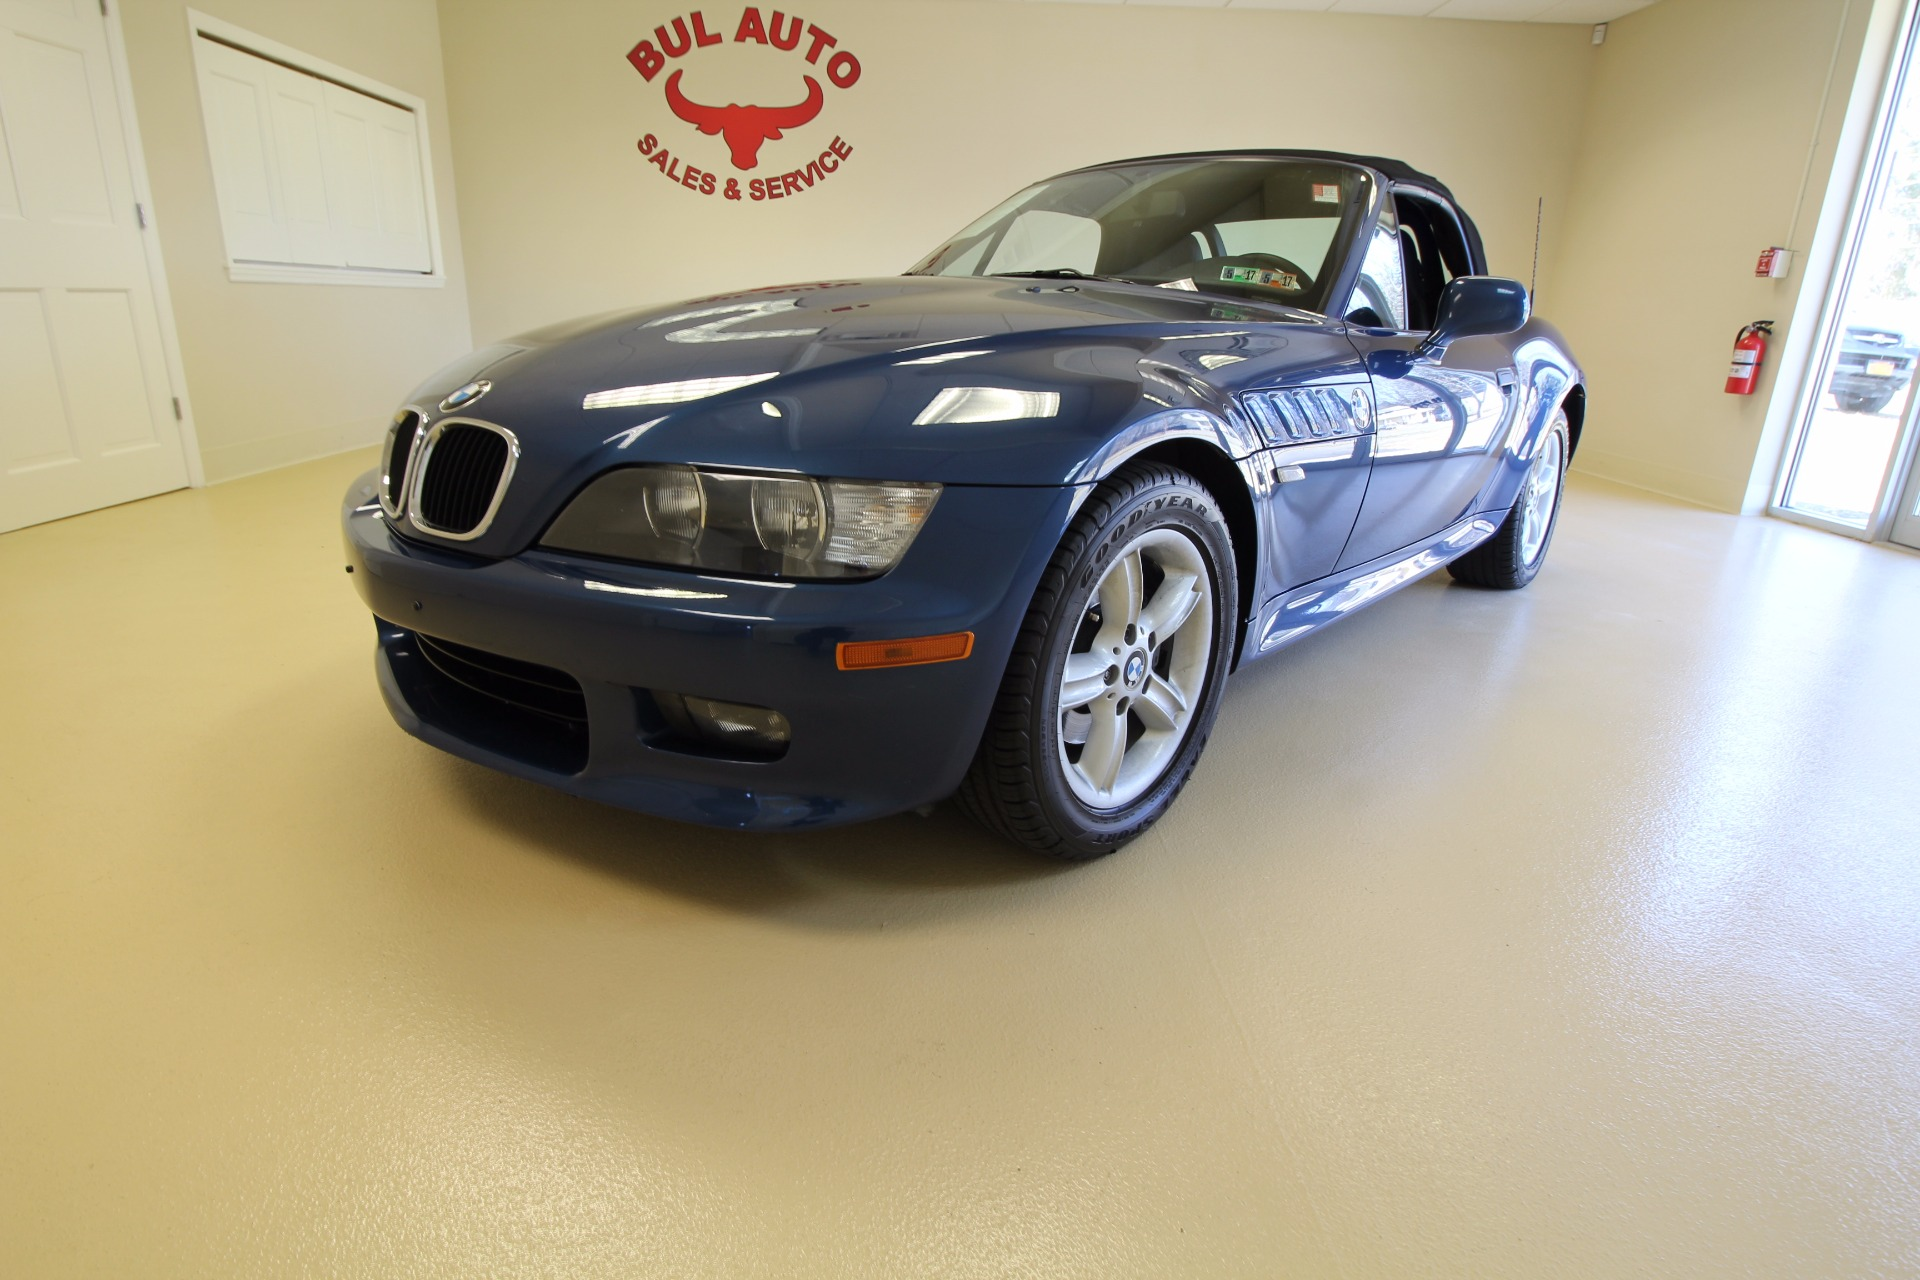 case analysis bmw z3 roadster The case deals with the launch, of the now infamous bmw z3 roadster, a car that revolutionized and rejuvenated the boring american motor industry back in the mid 1990's the case talks about the successful first phase launch of this new drop top beauty.